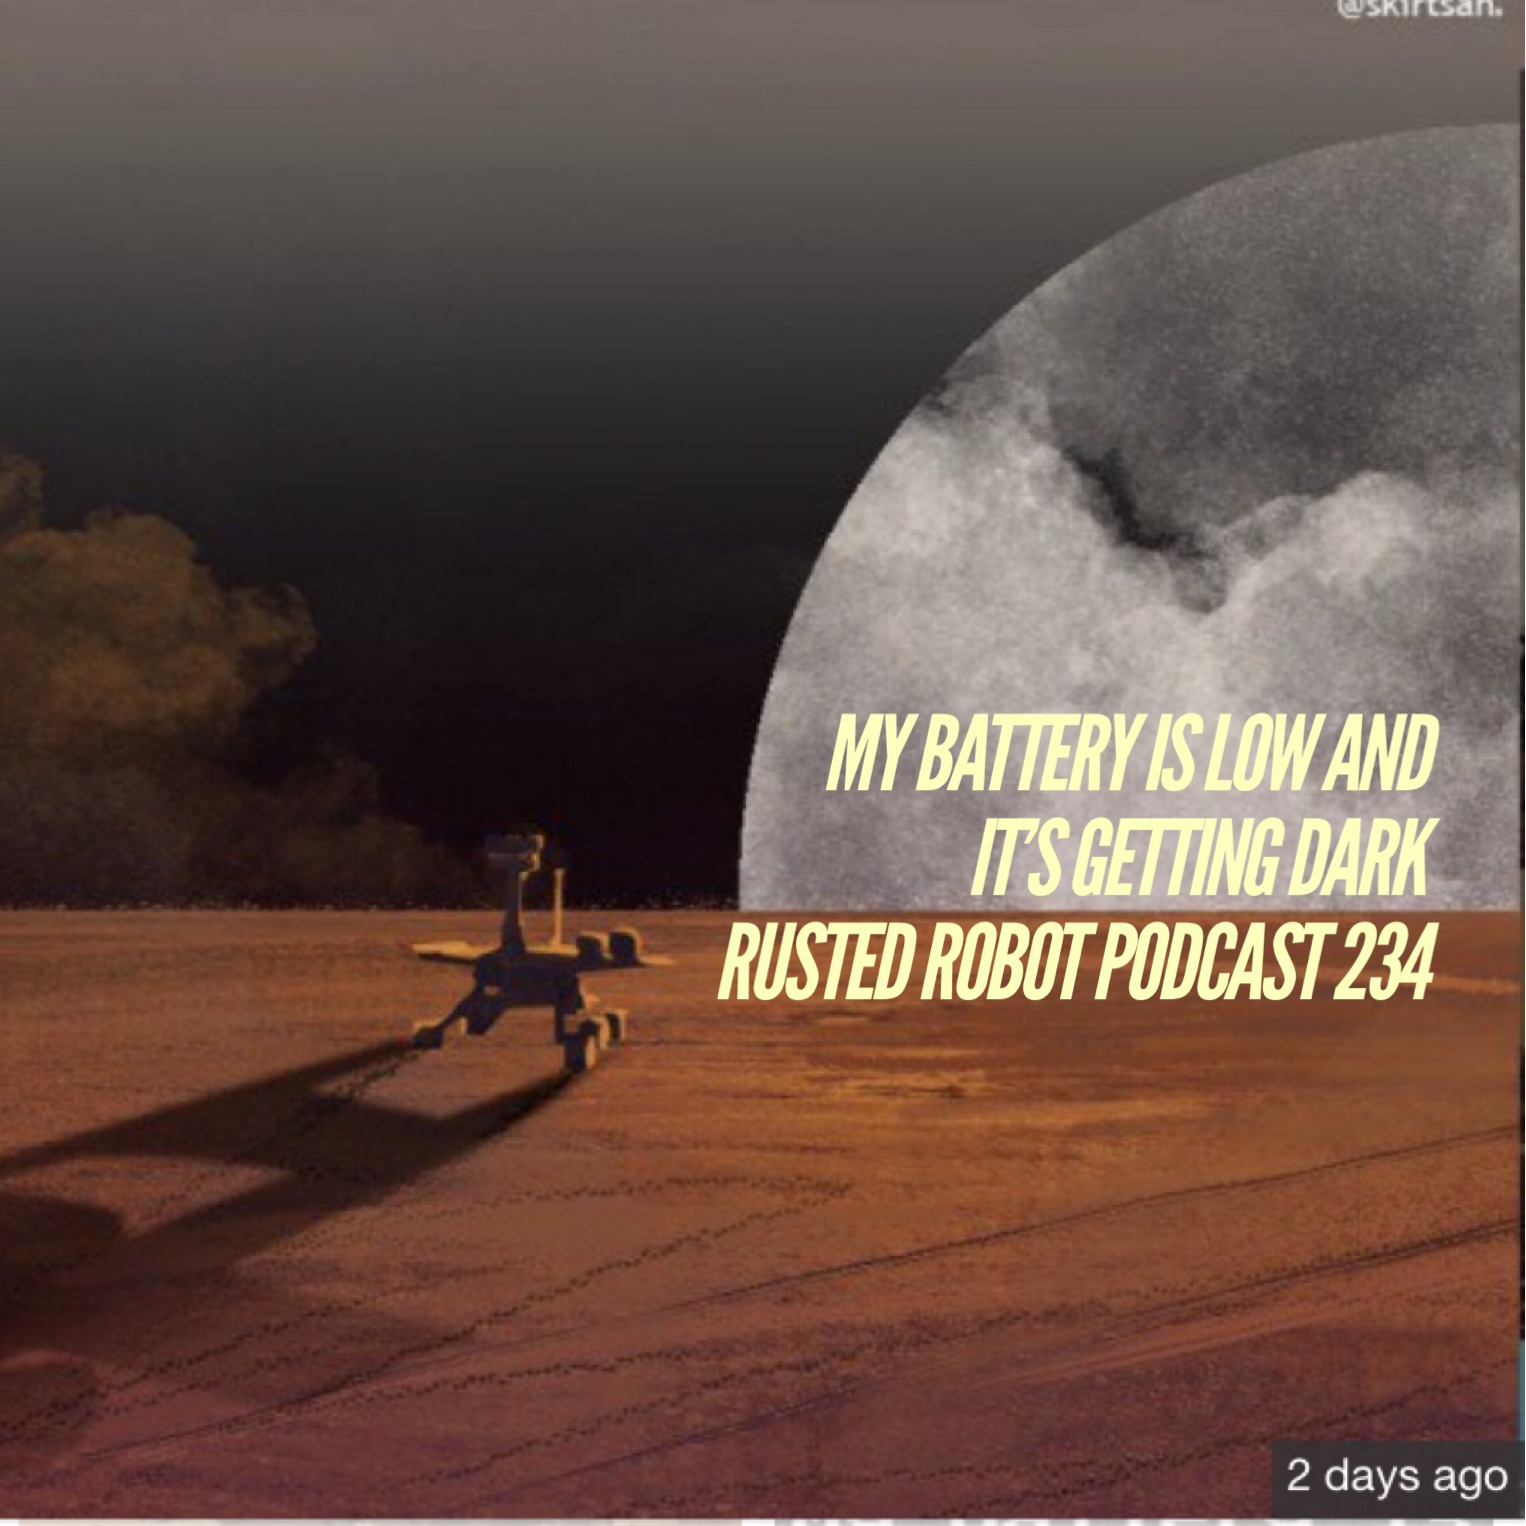 My Battery Is Low And It's Getting Dark - 234